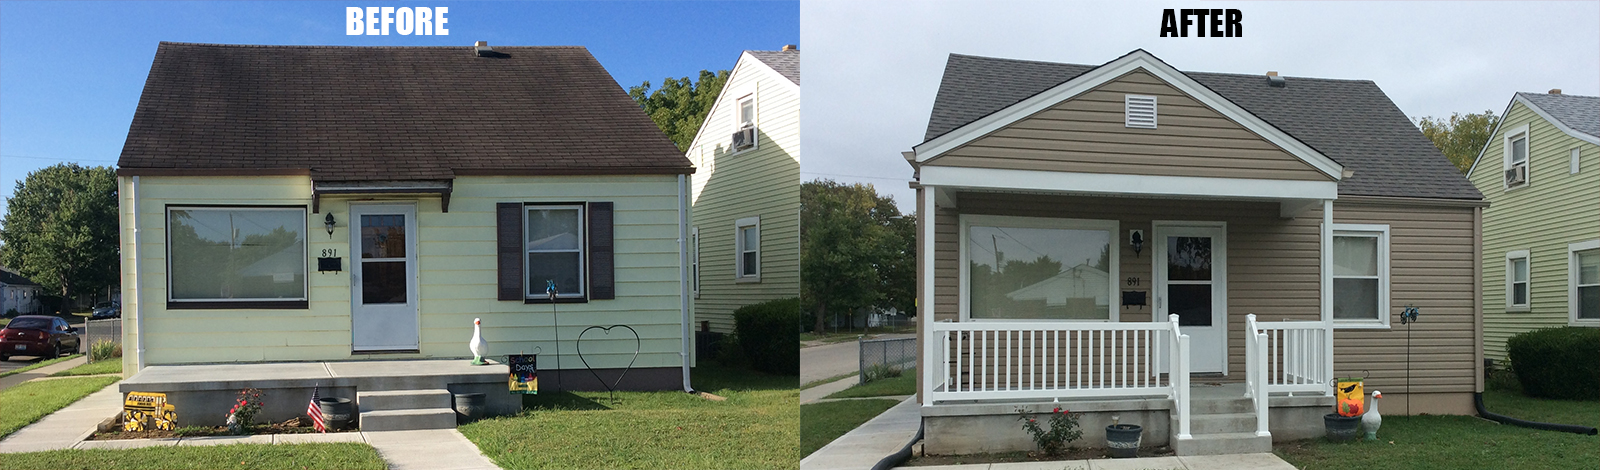 Home Improvement Before & After